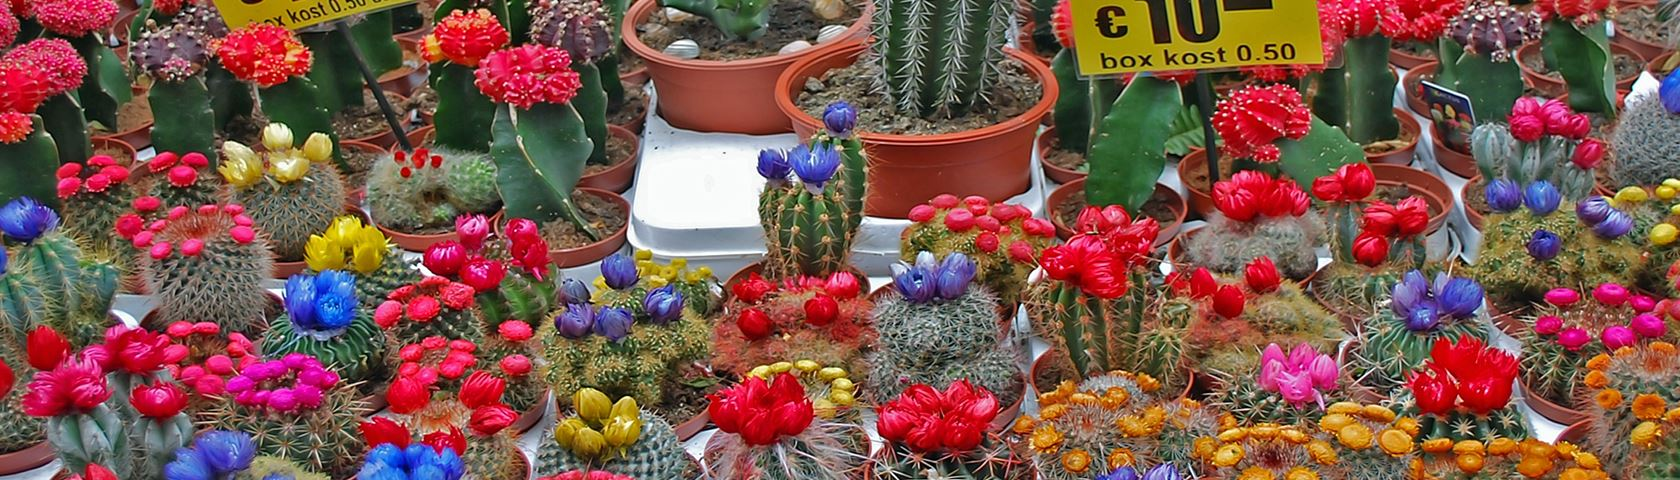 At the Cactus Store